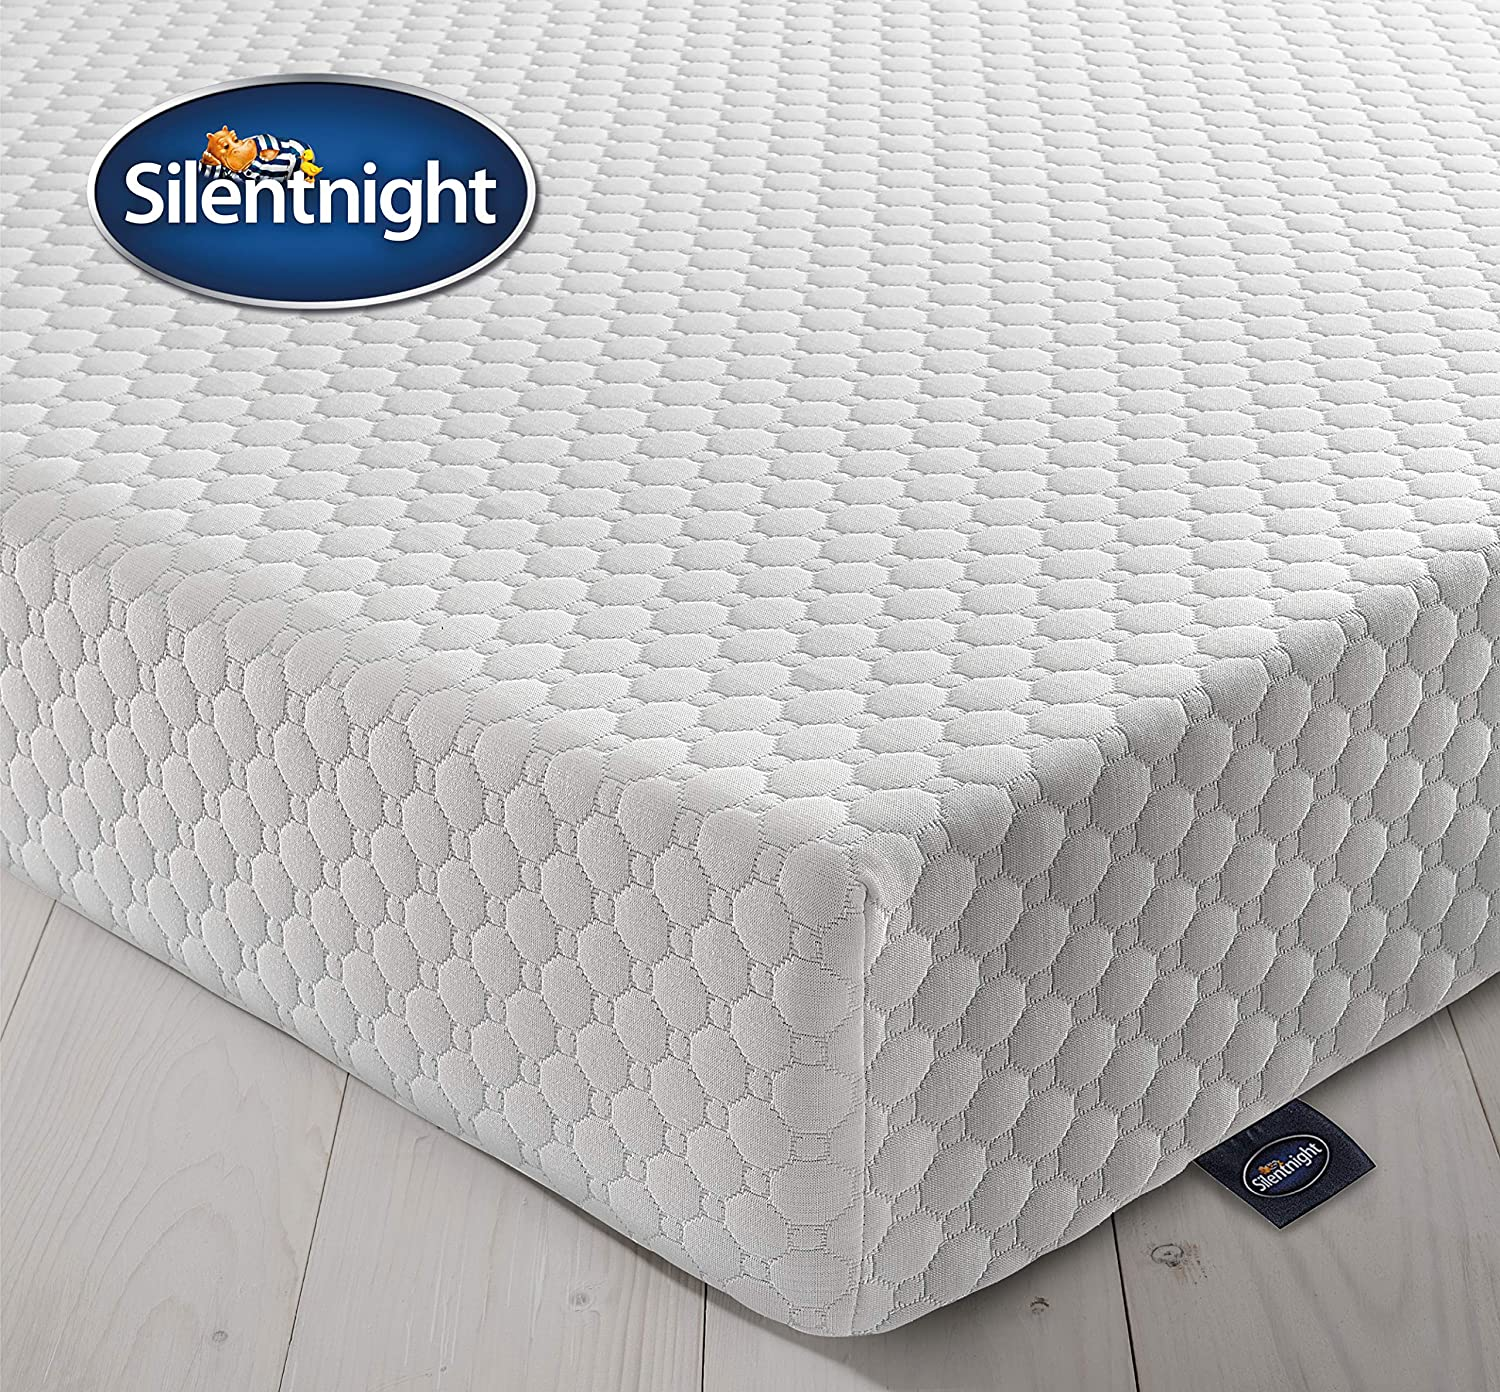 Top 10 Best Mattress Toppers Reviews in 2020 6